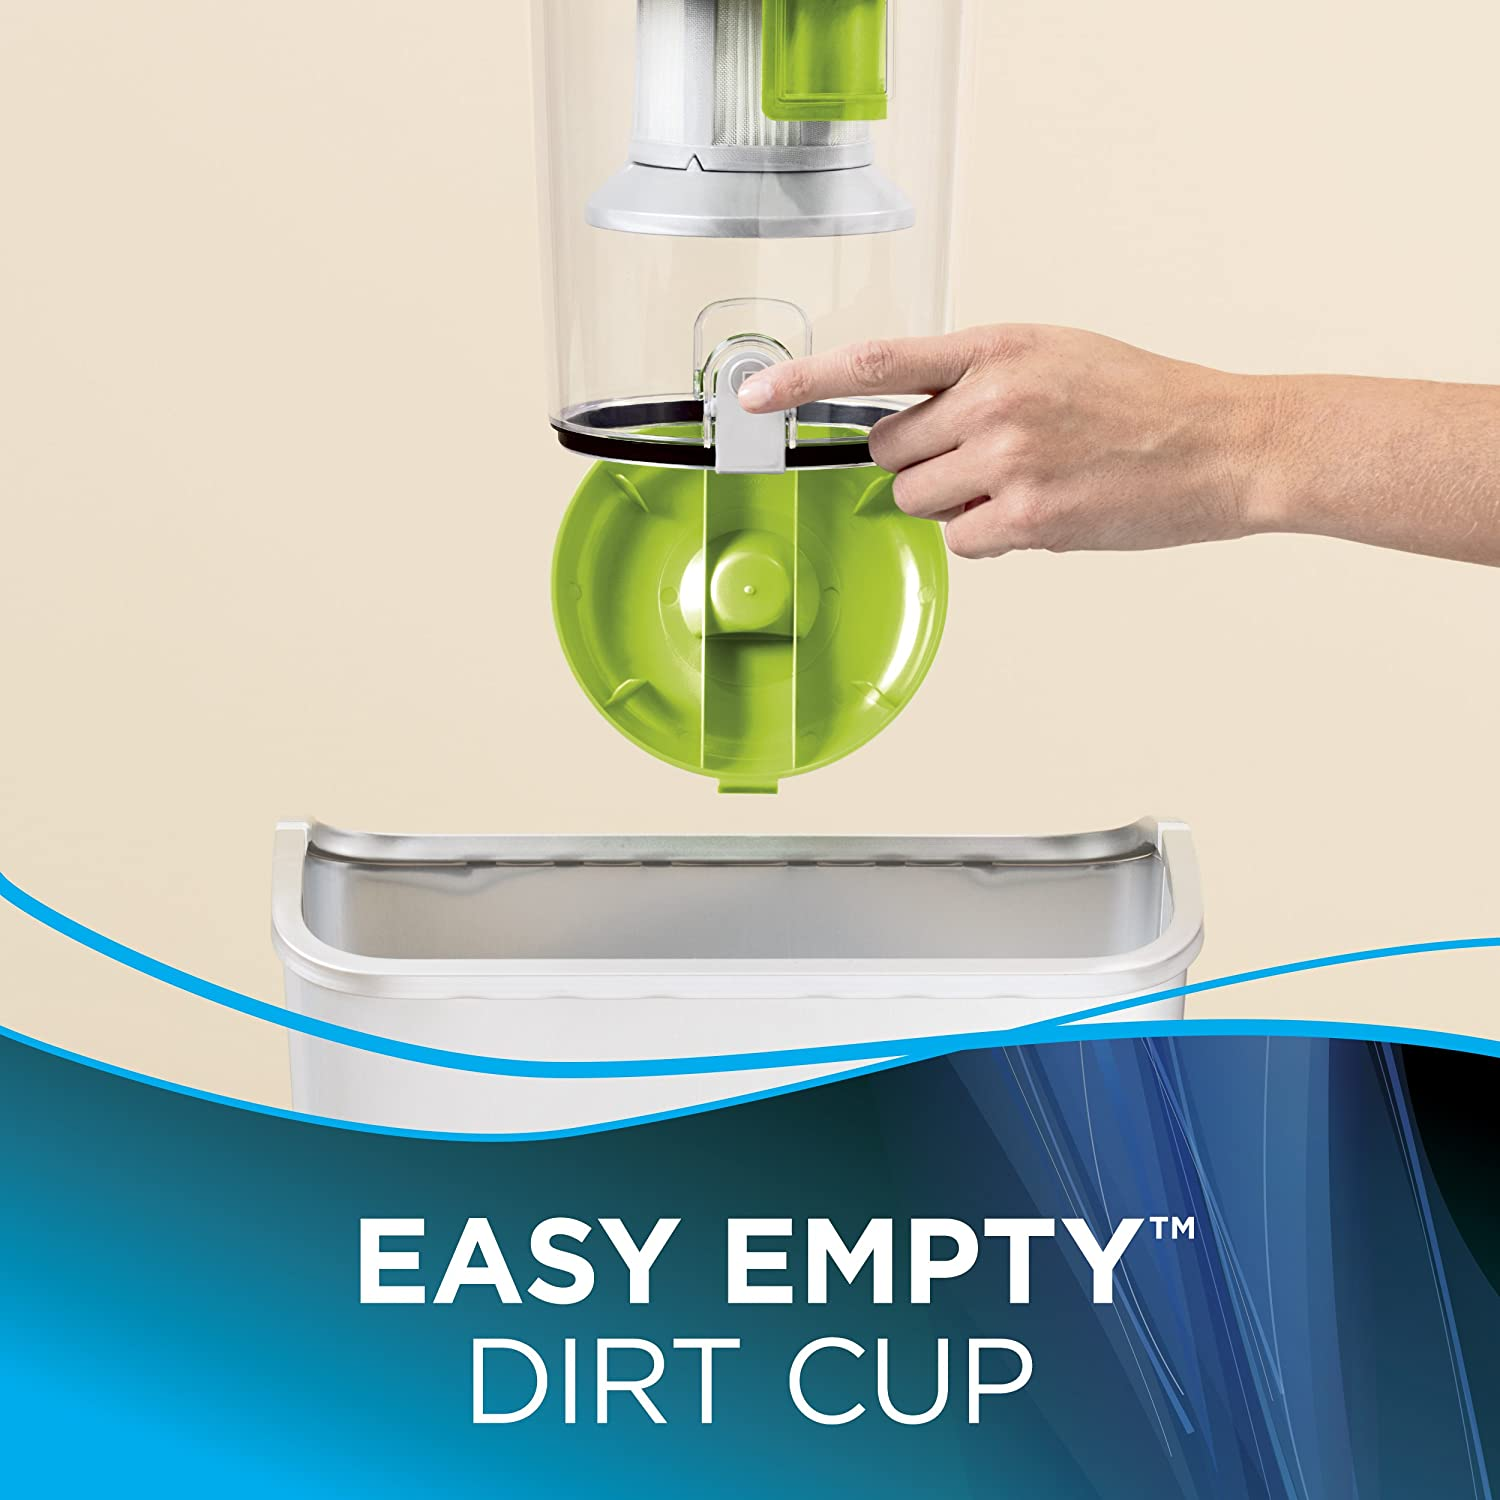 Easy Empty Dirt Cup Removable dirt cup equipped with an Easy Empty lid for quick, mess-free emptying